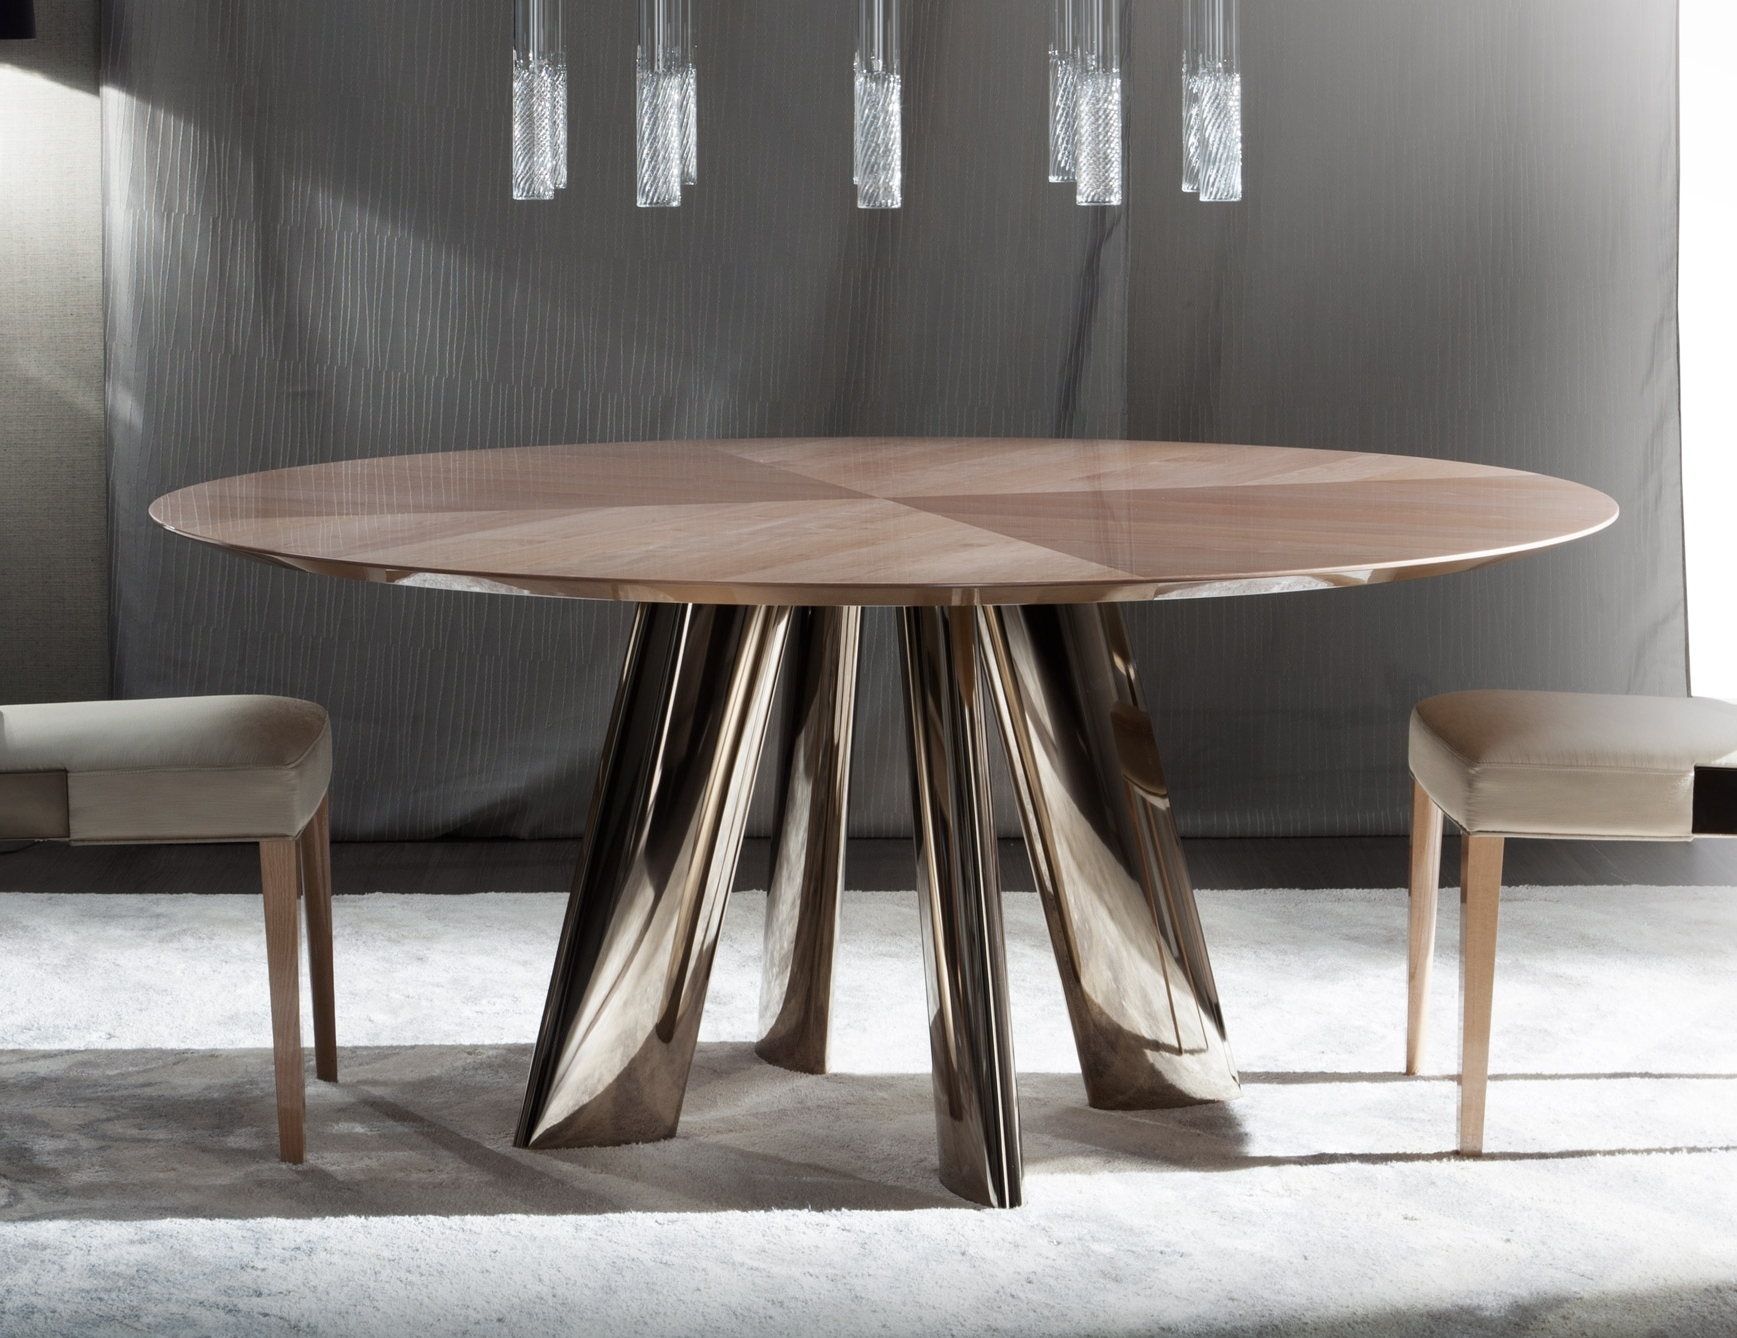 Famous Nella Vetrina Costantini Dress 9285Tr Modern Italian Dining Table Intended For Italian Dining Tables (View 4 of 25)